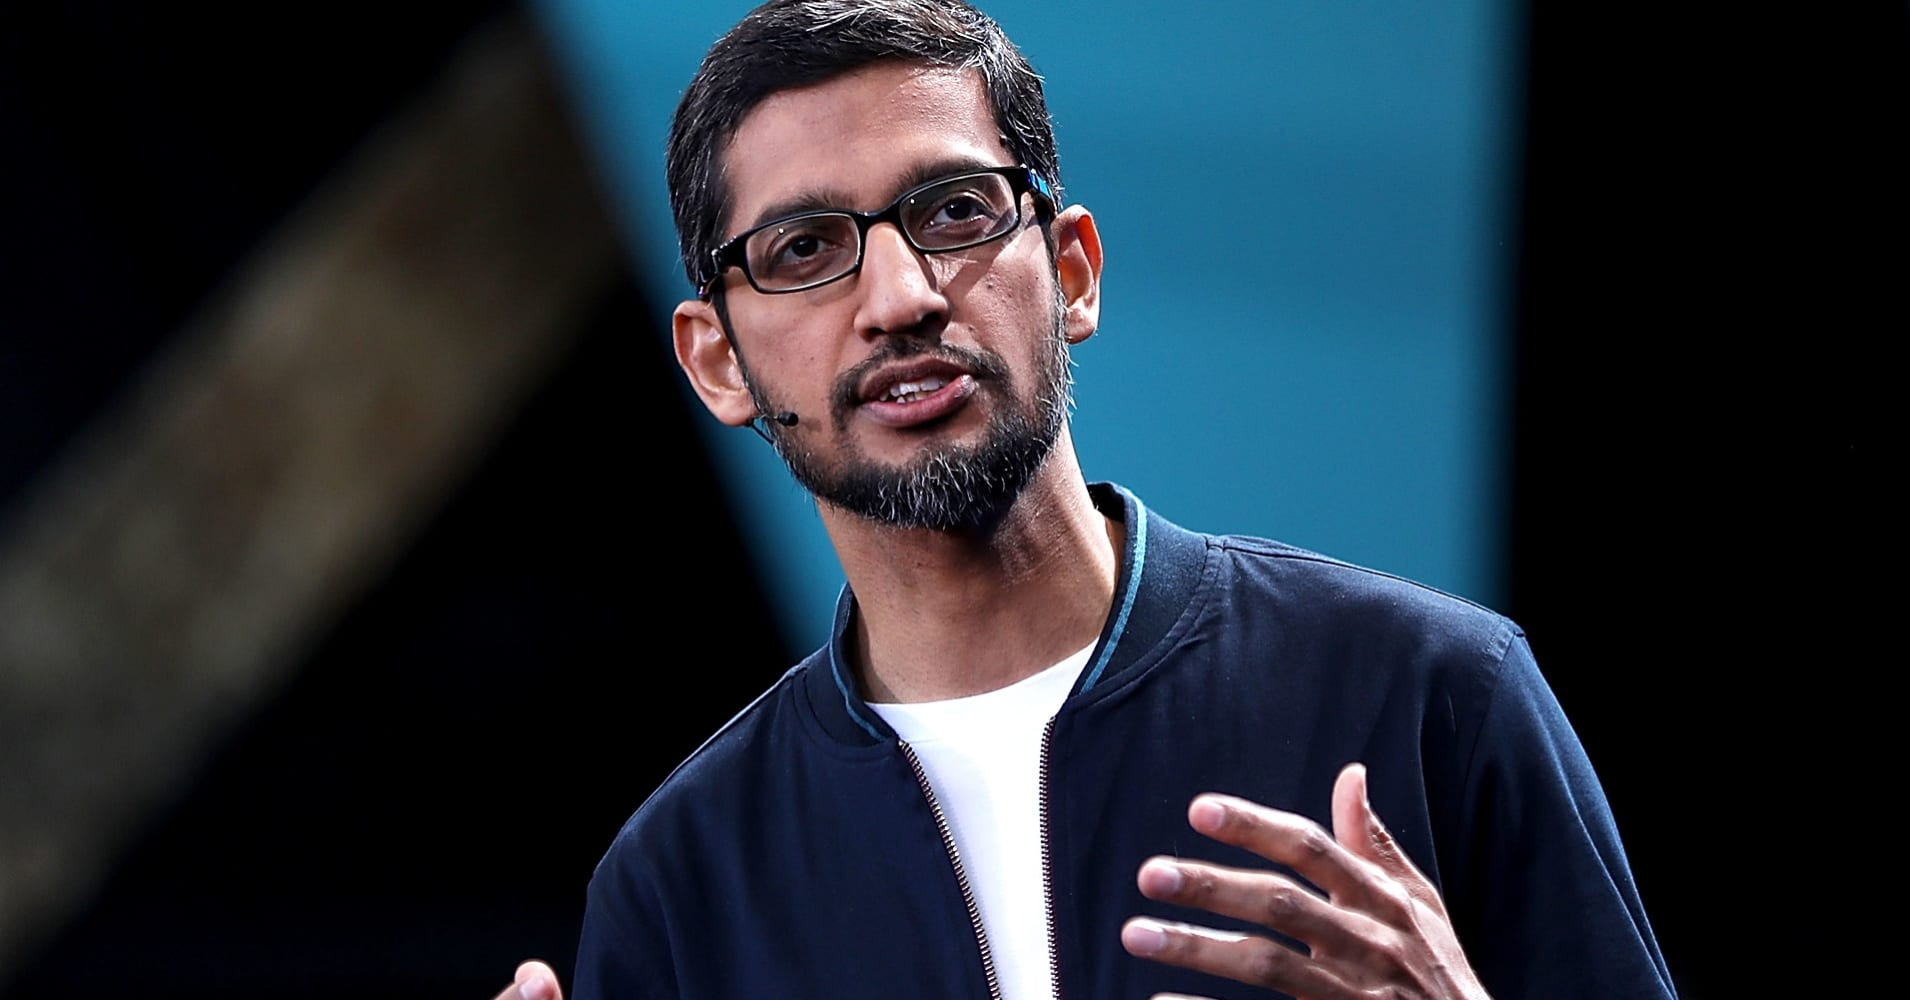 Google chief pledges to scour more content as elections loom